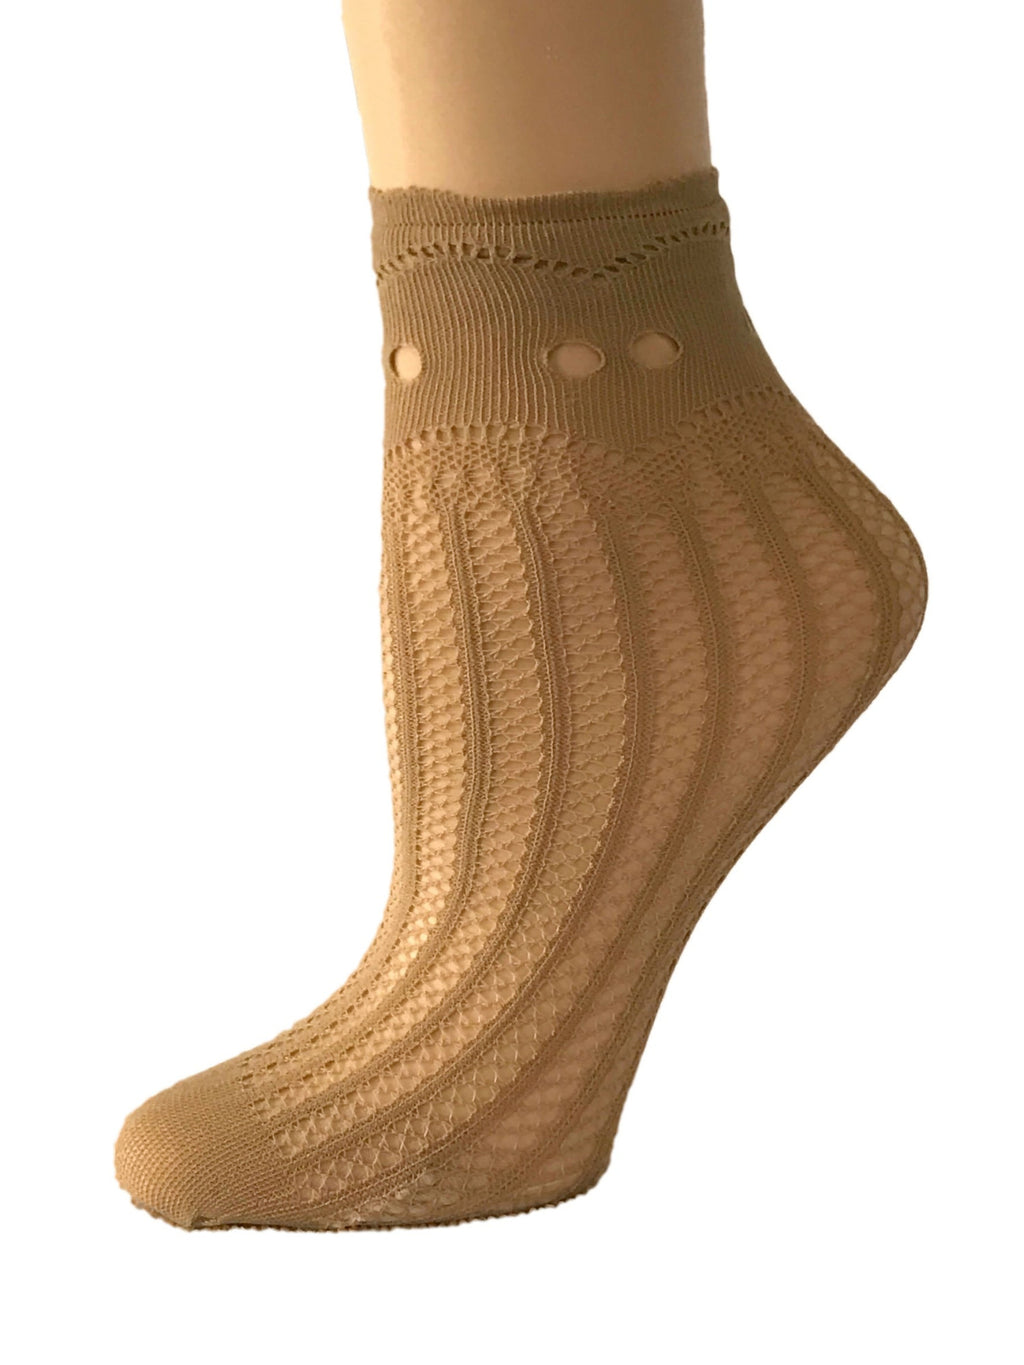 Cinderella Beige Mesh Socks - Global Trendz Fashion®